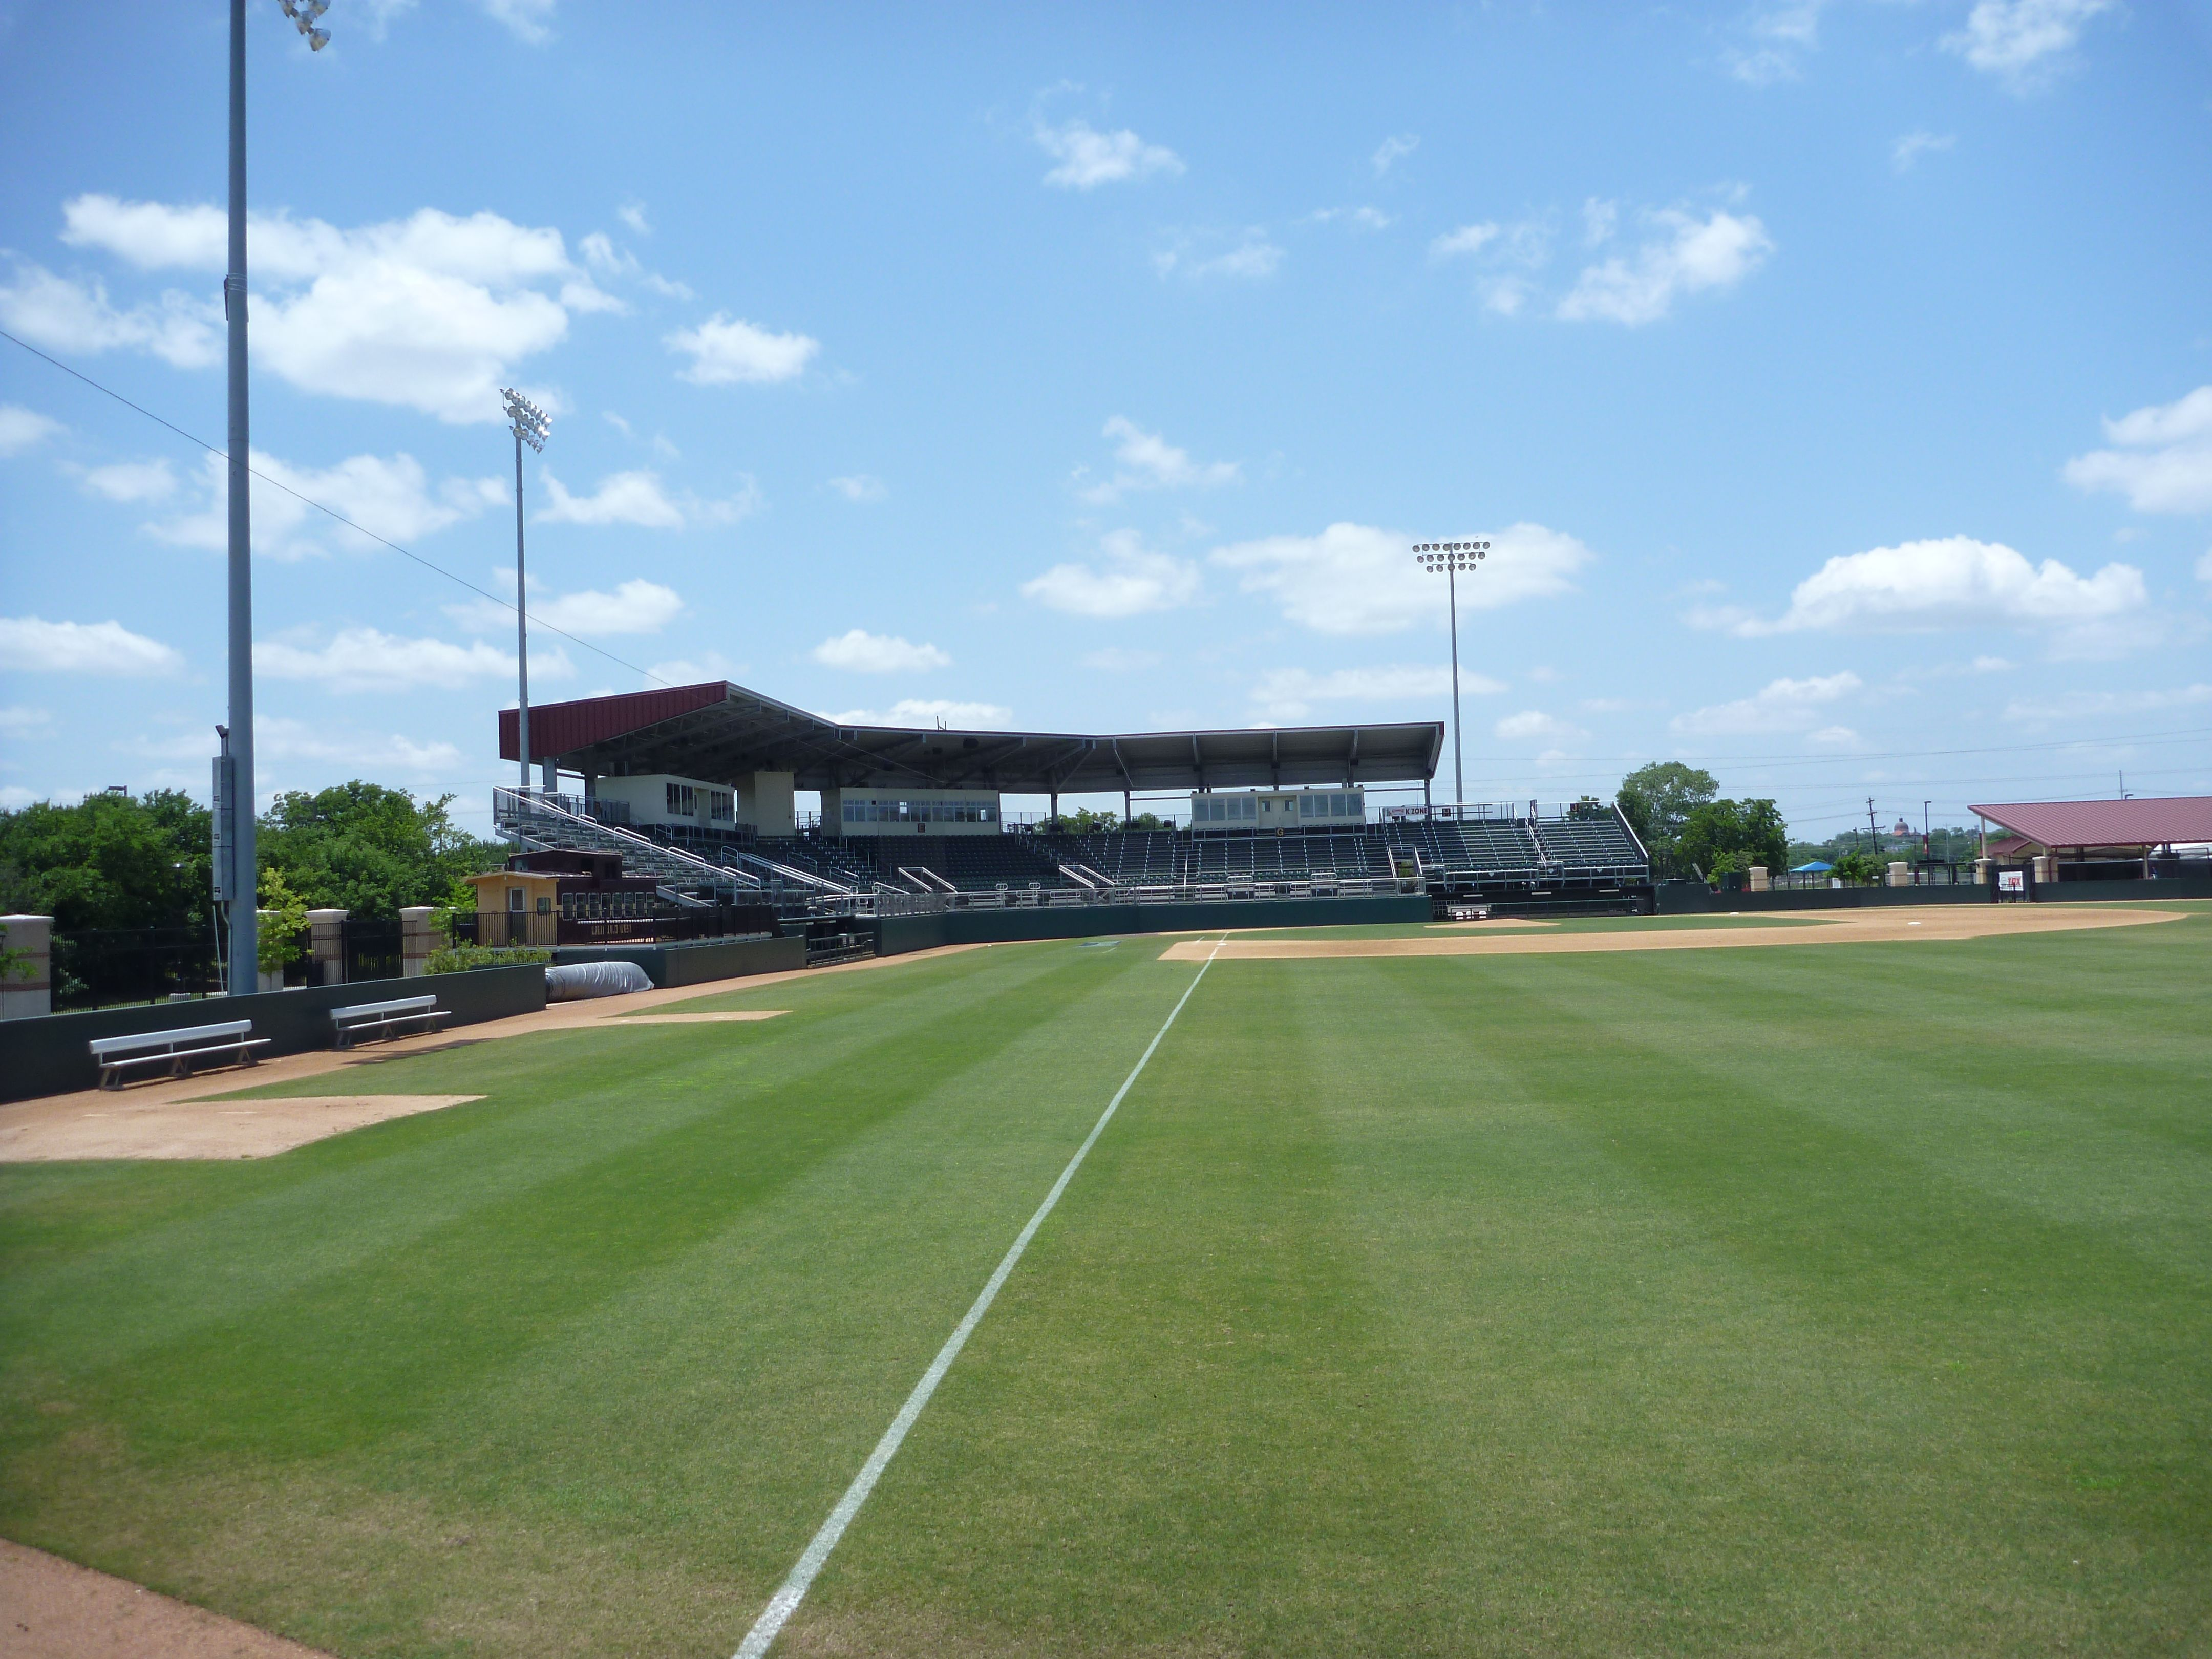 Texas State University S Bobcat Field In San Marcos Tx Picture Taken On 5 28 12 No Game Texas State University Field College Baseball